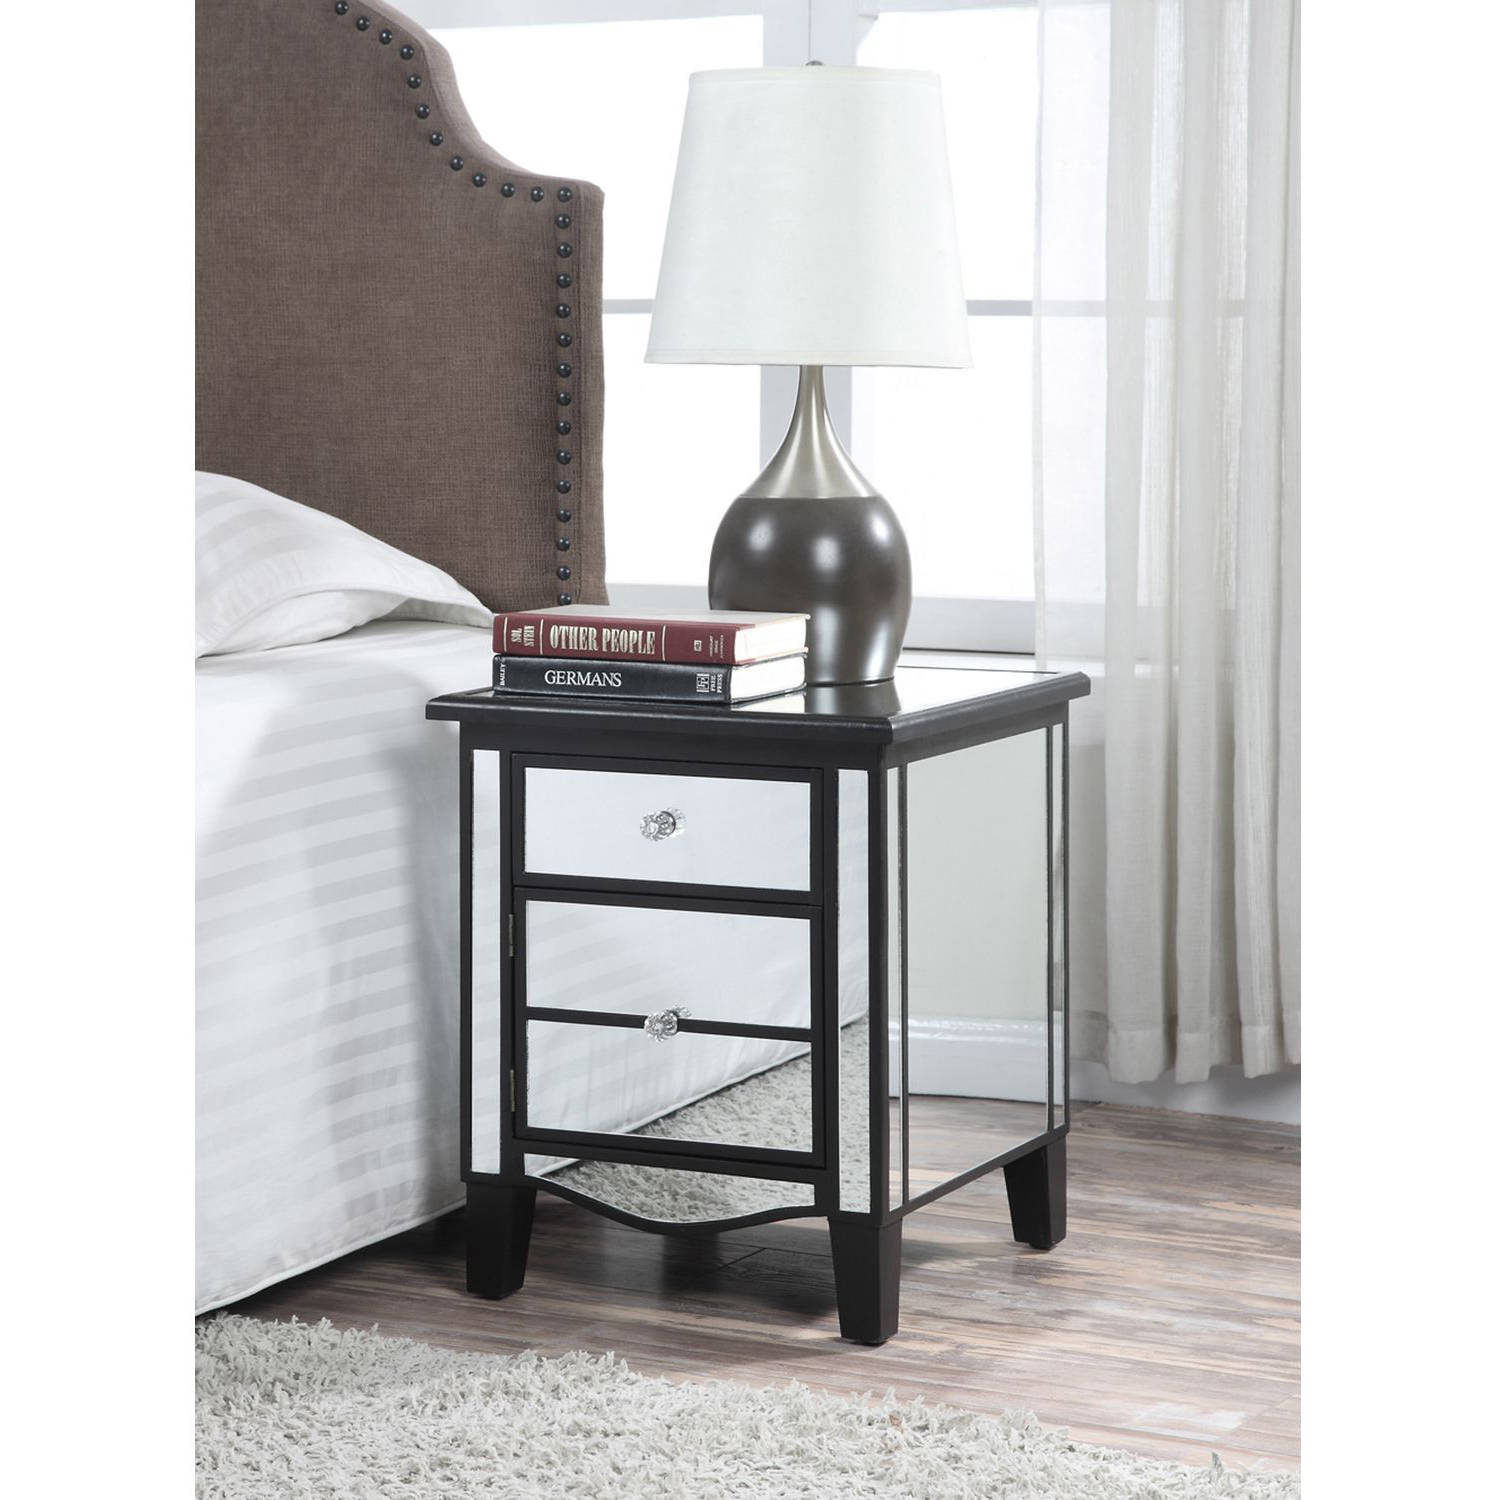 convenience concepts gold coast park lane mirrored end table multiple colors line fabrics laura ashley stone and glass tables kmart womens bikes navy blue side winners homesense